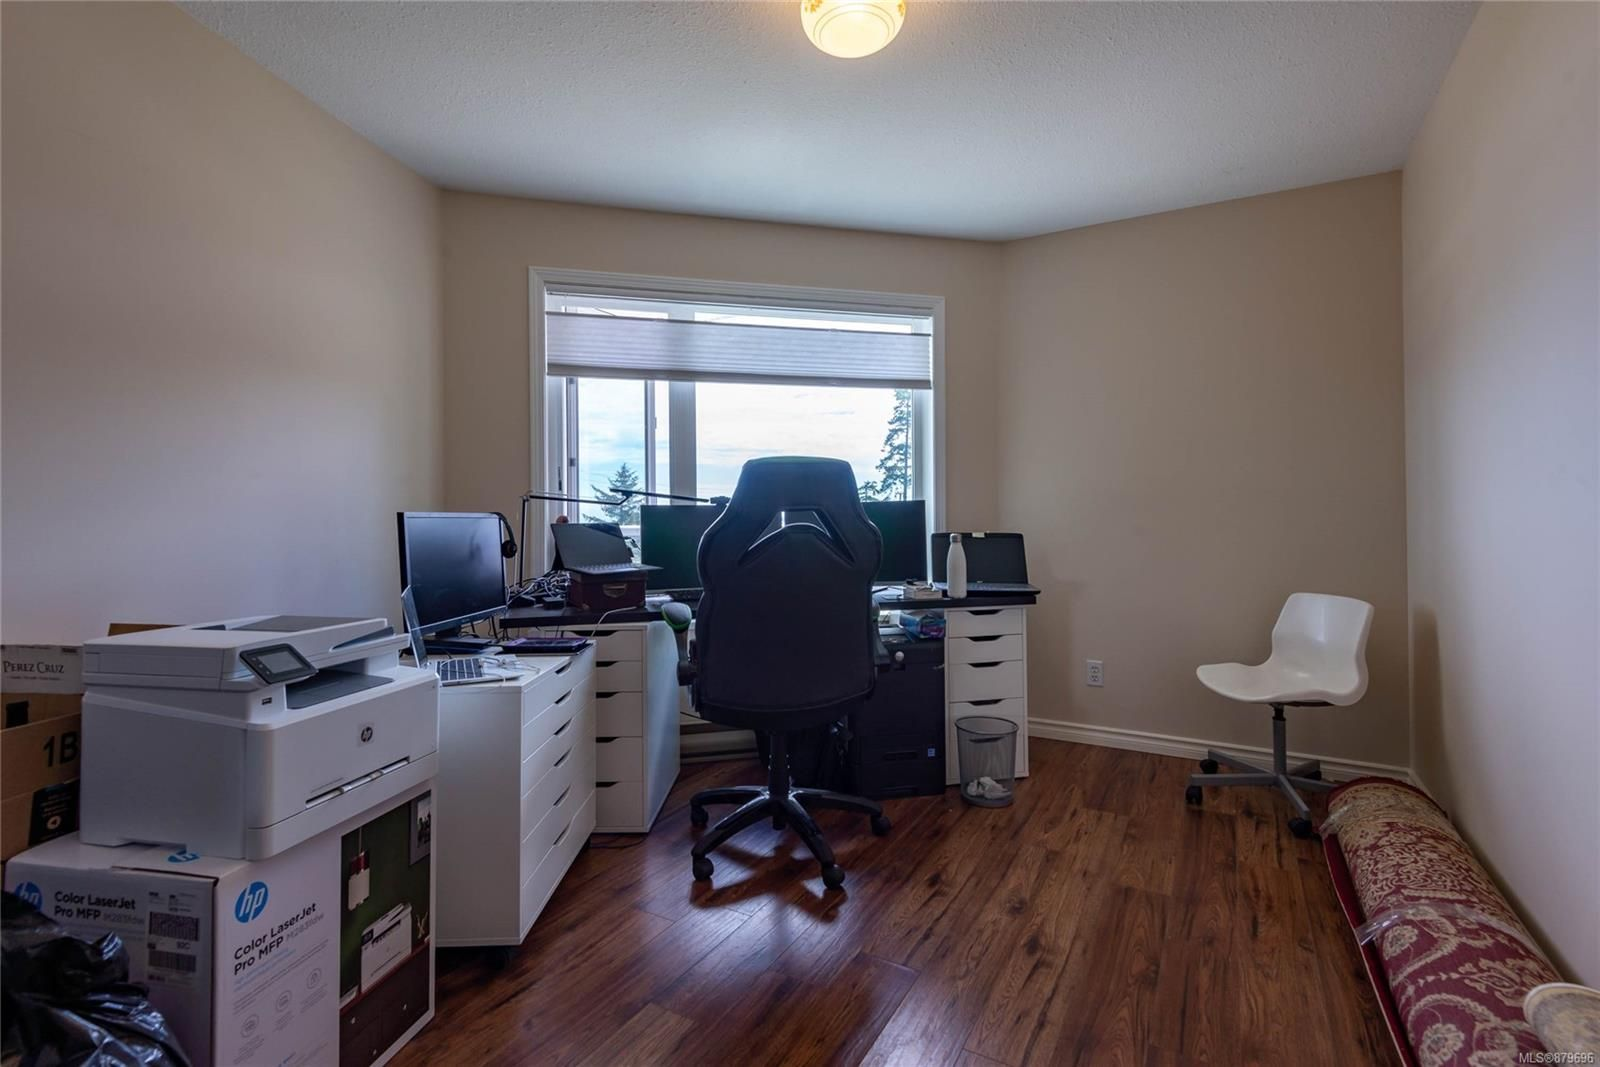 Photo 19: Photos: 219 390 S Island Hwy in : CR Campbell River West Condo for sale (Campbell River)  : MLS®# 879696